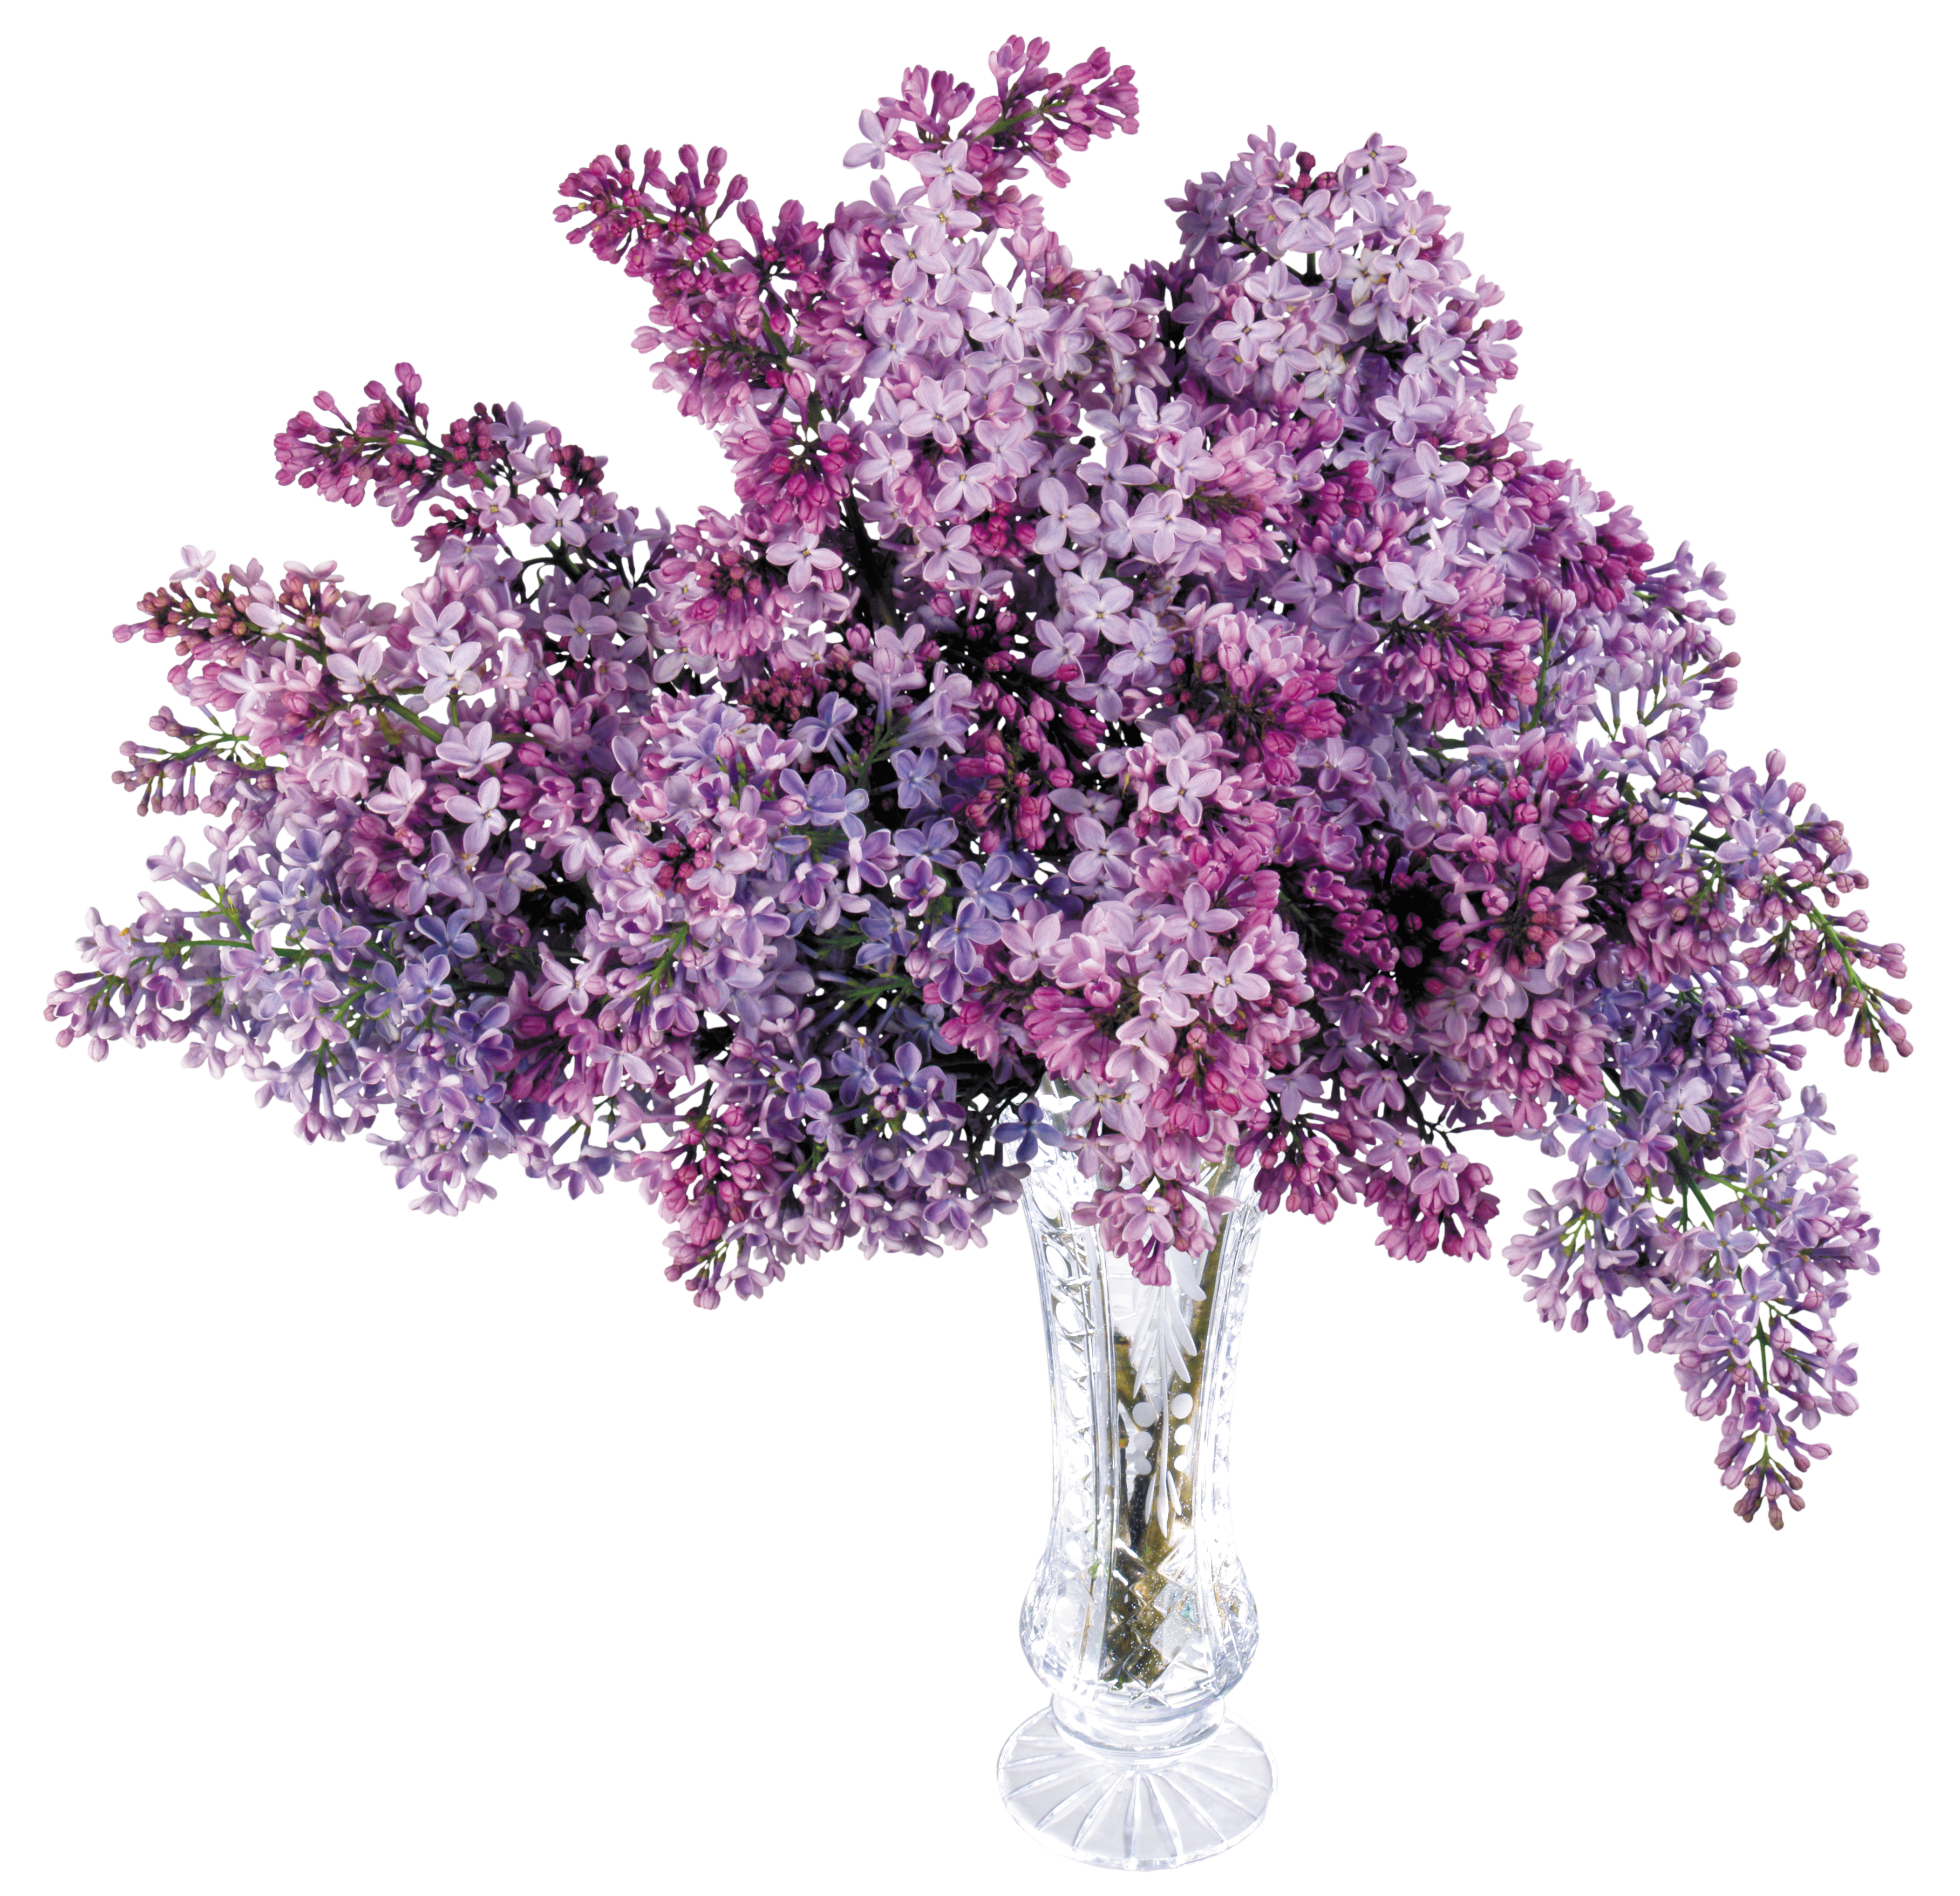 Lilac flower png. Transparent vase with picture